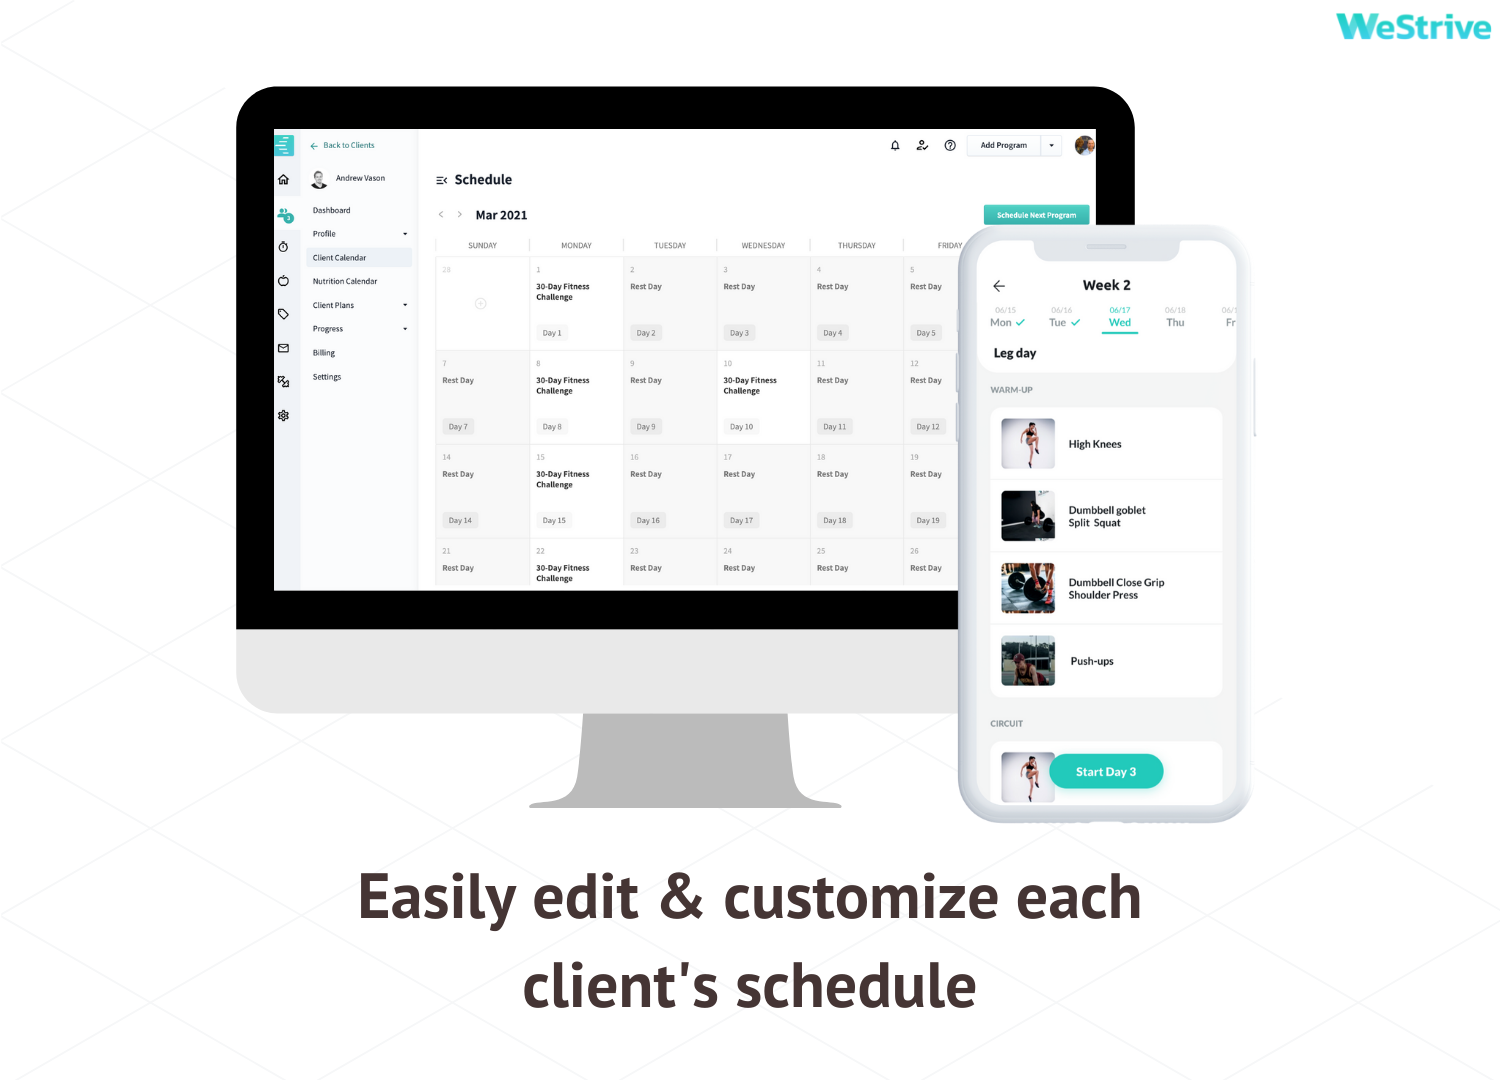 Easily edit & customize your client's fitness schedule